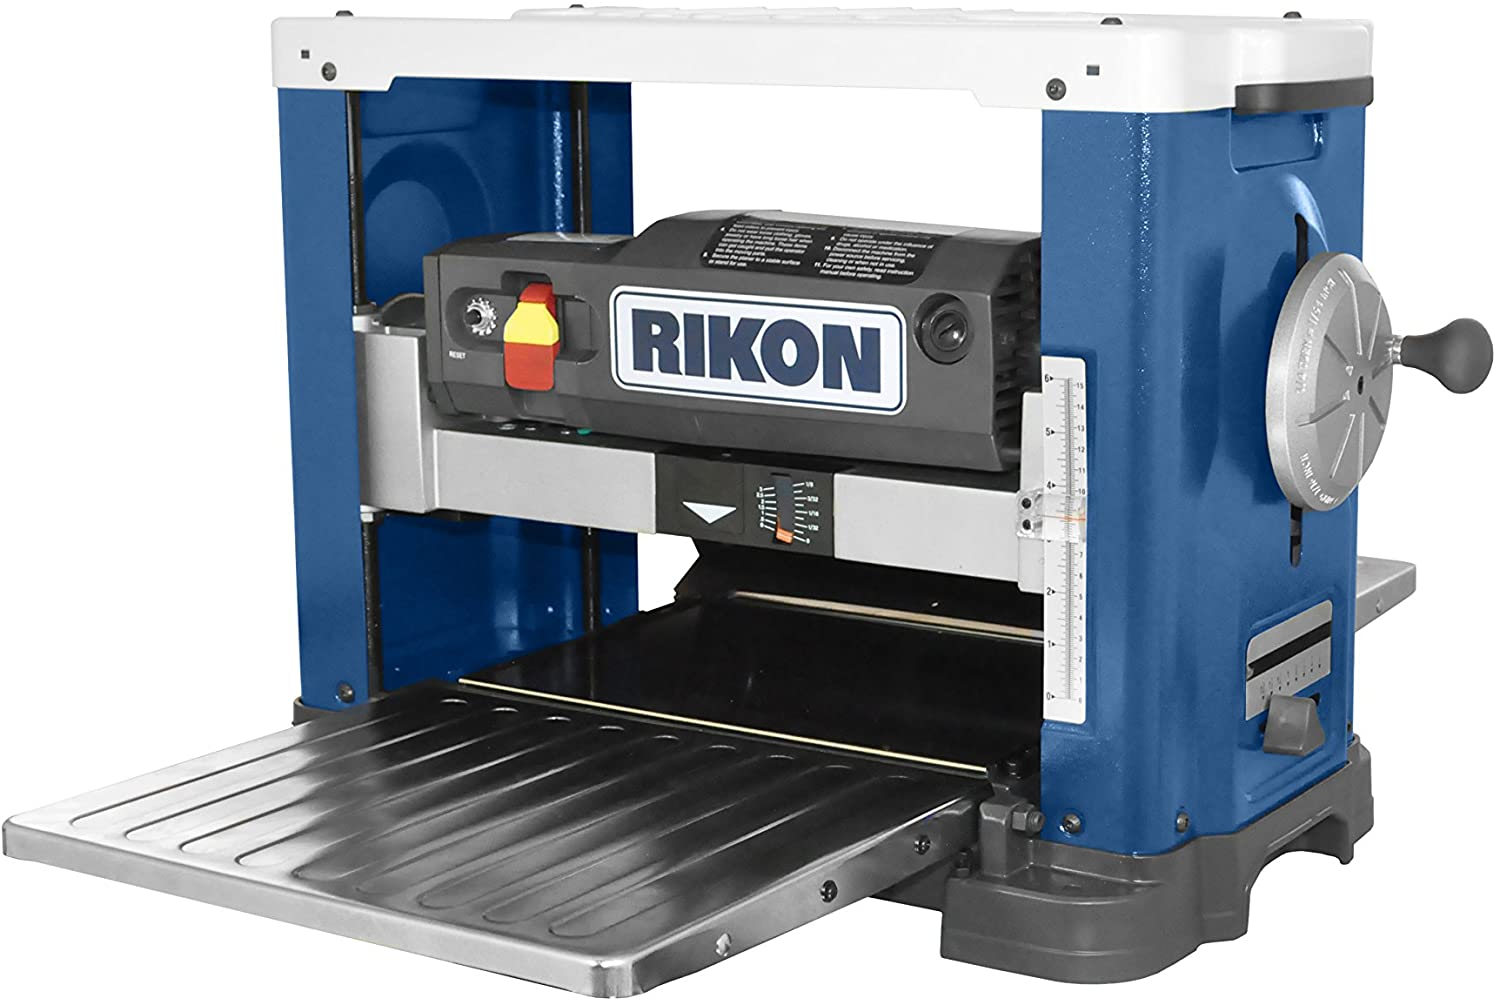 RIKON Power Tools 25-130H 13-Inch Thickness Planer